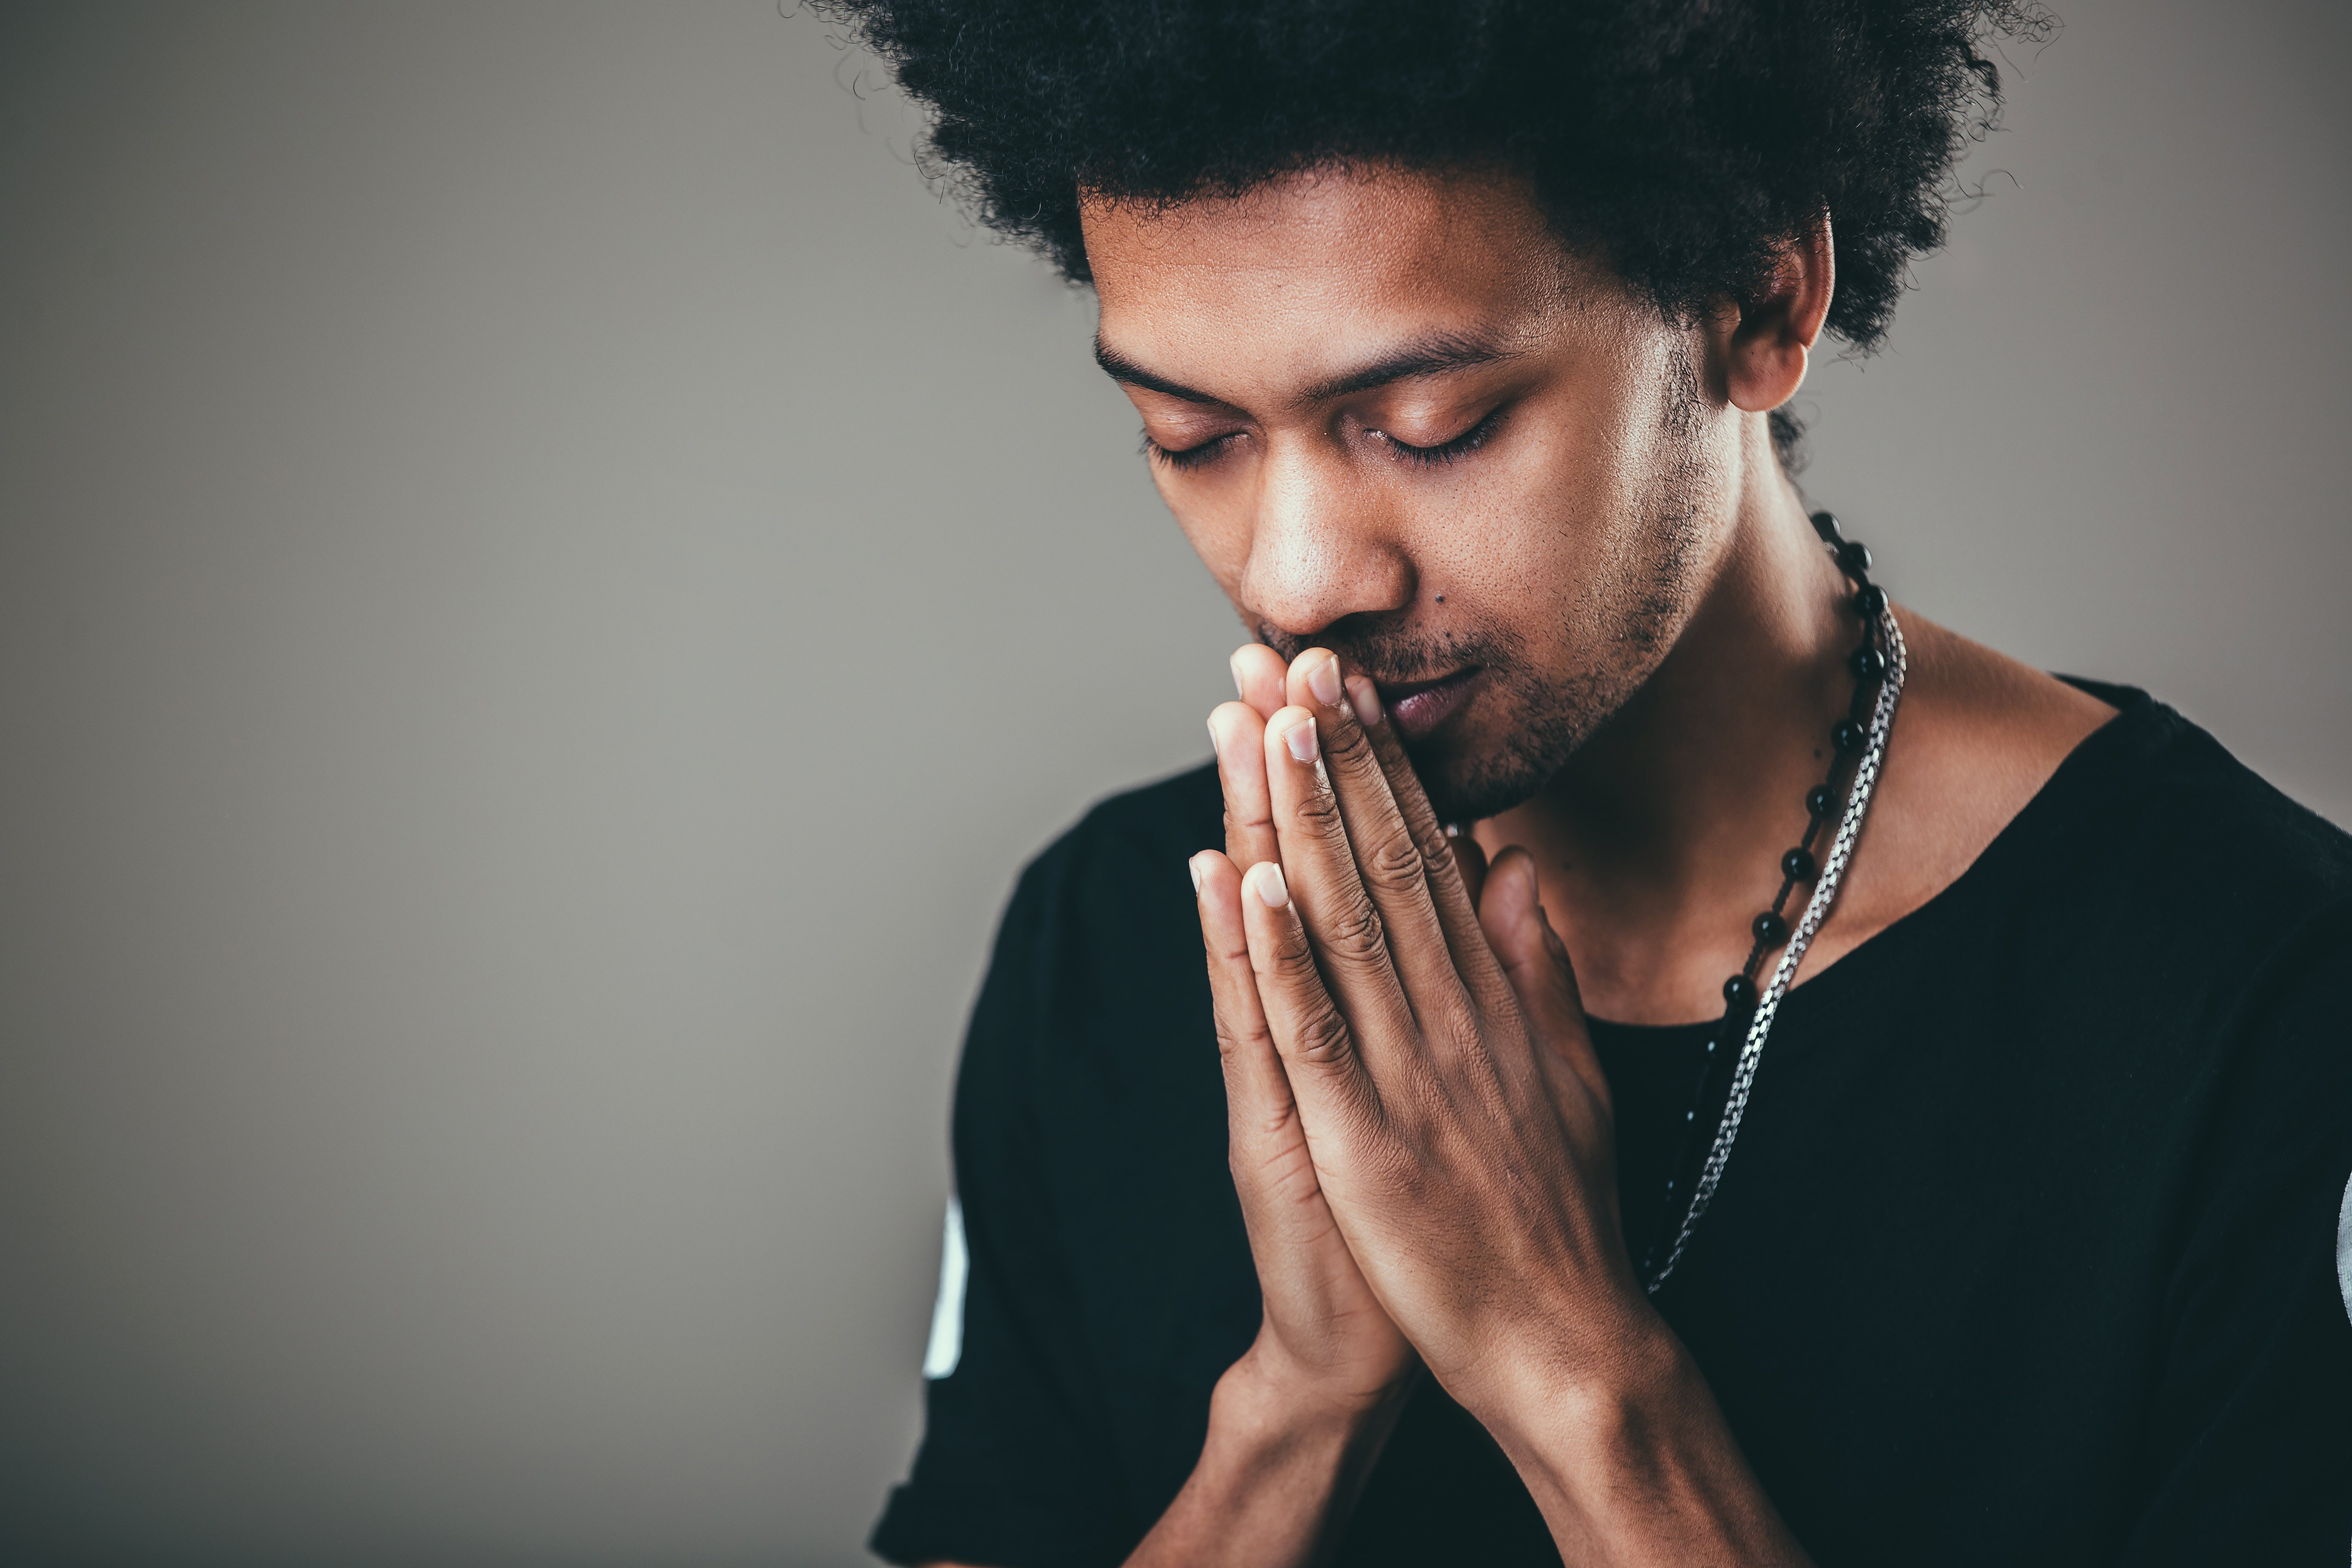 A person praying. | Source: Shutterstock